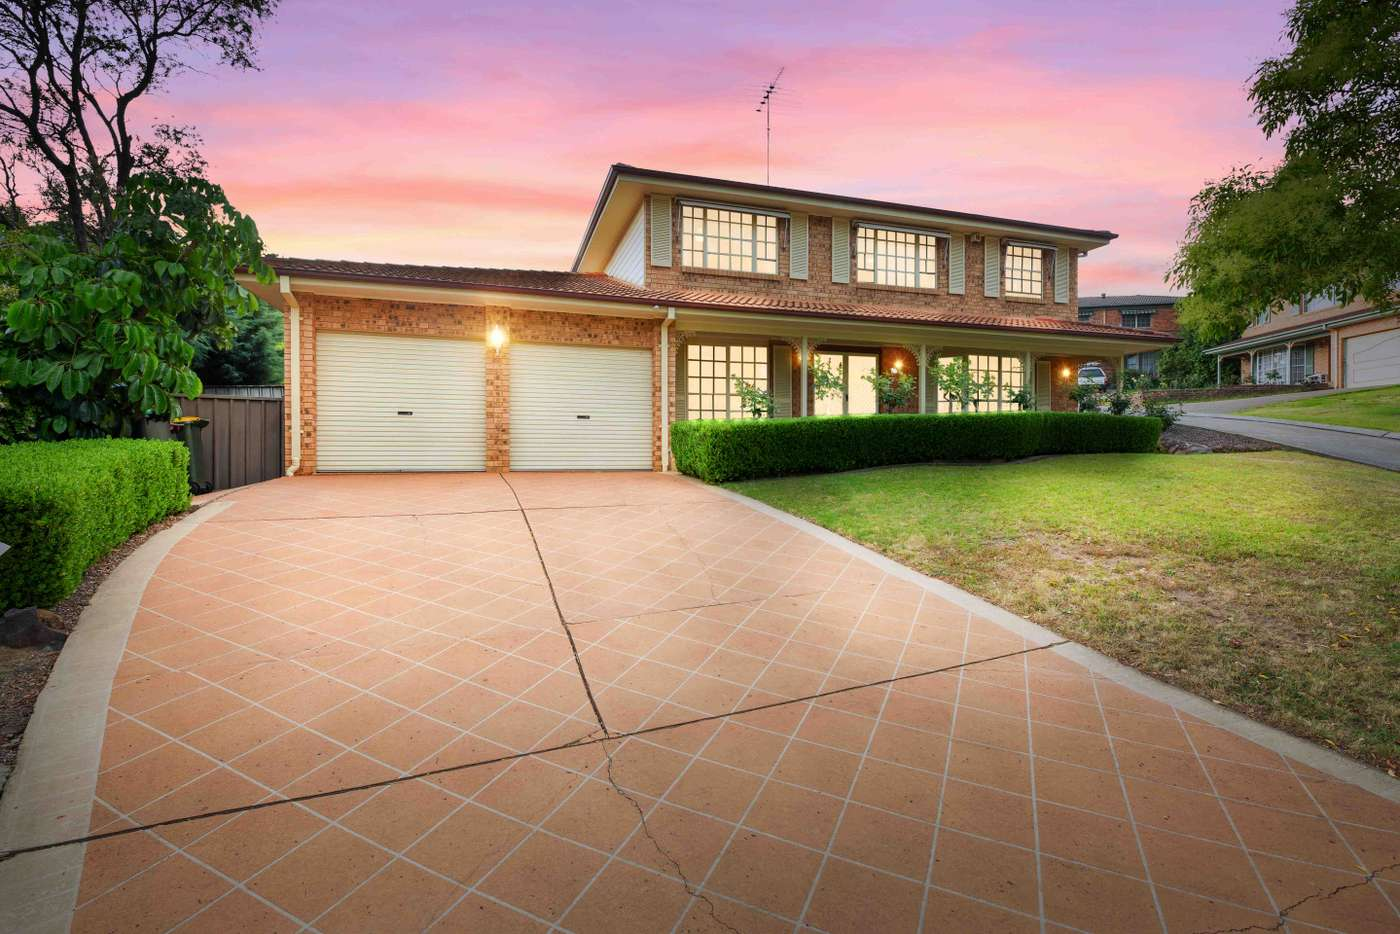 Main view of Homely house listing, 10 Carmel Close, Baulkham Hills NSW 2153